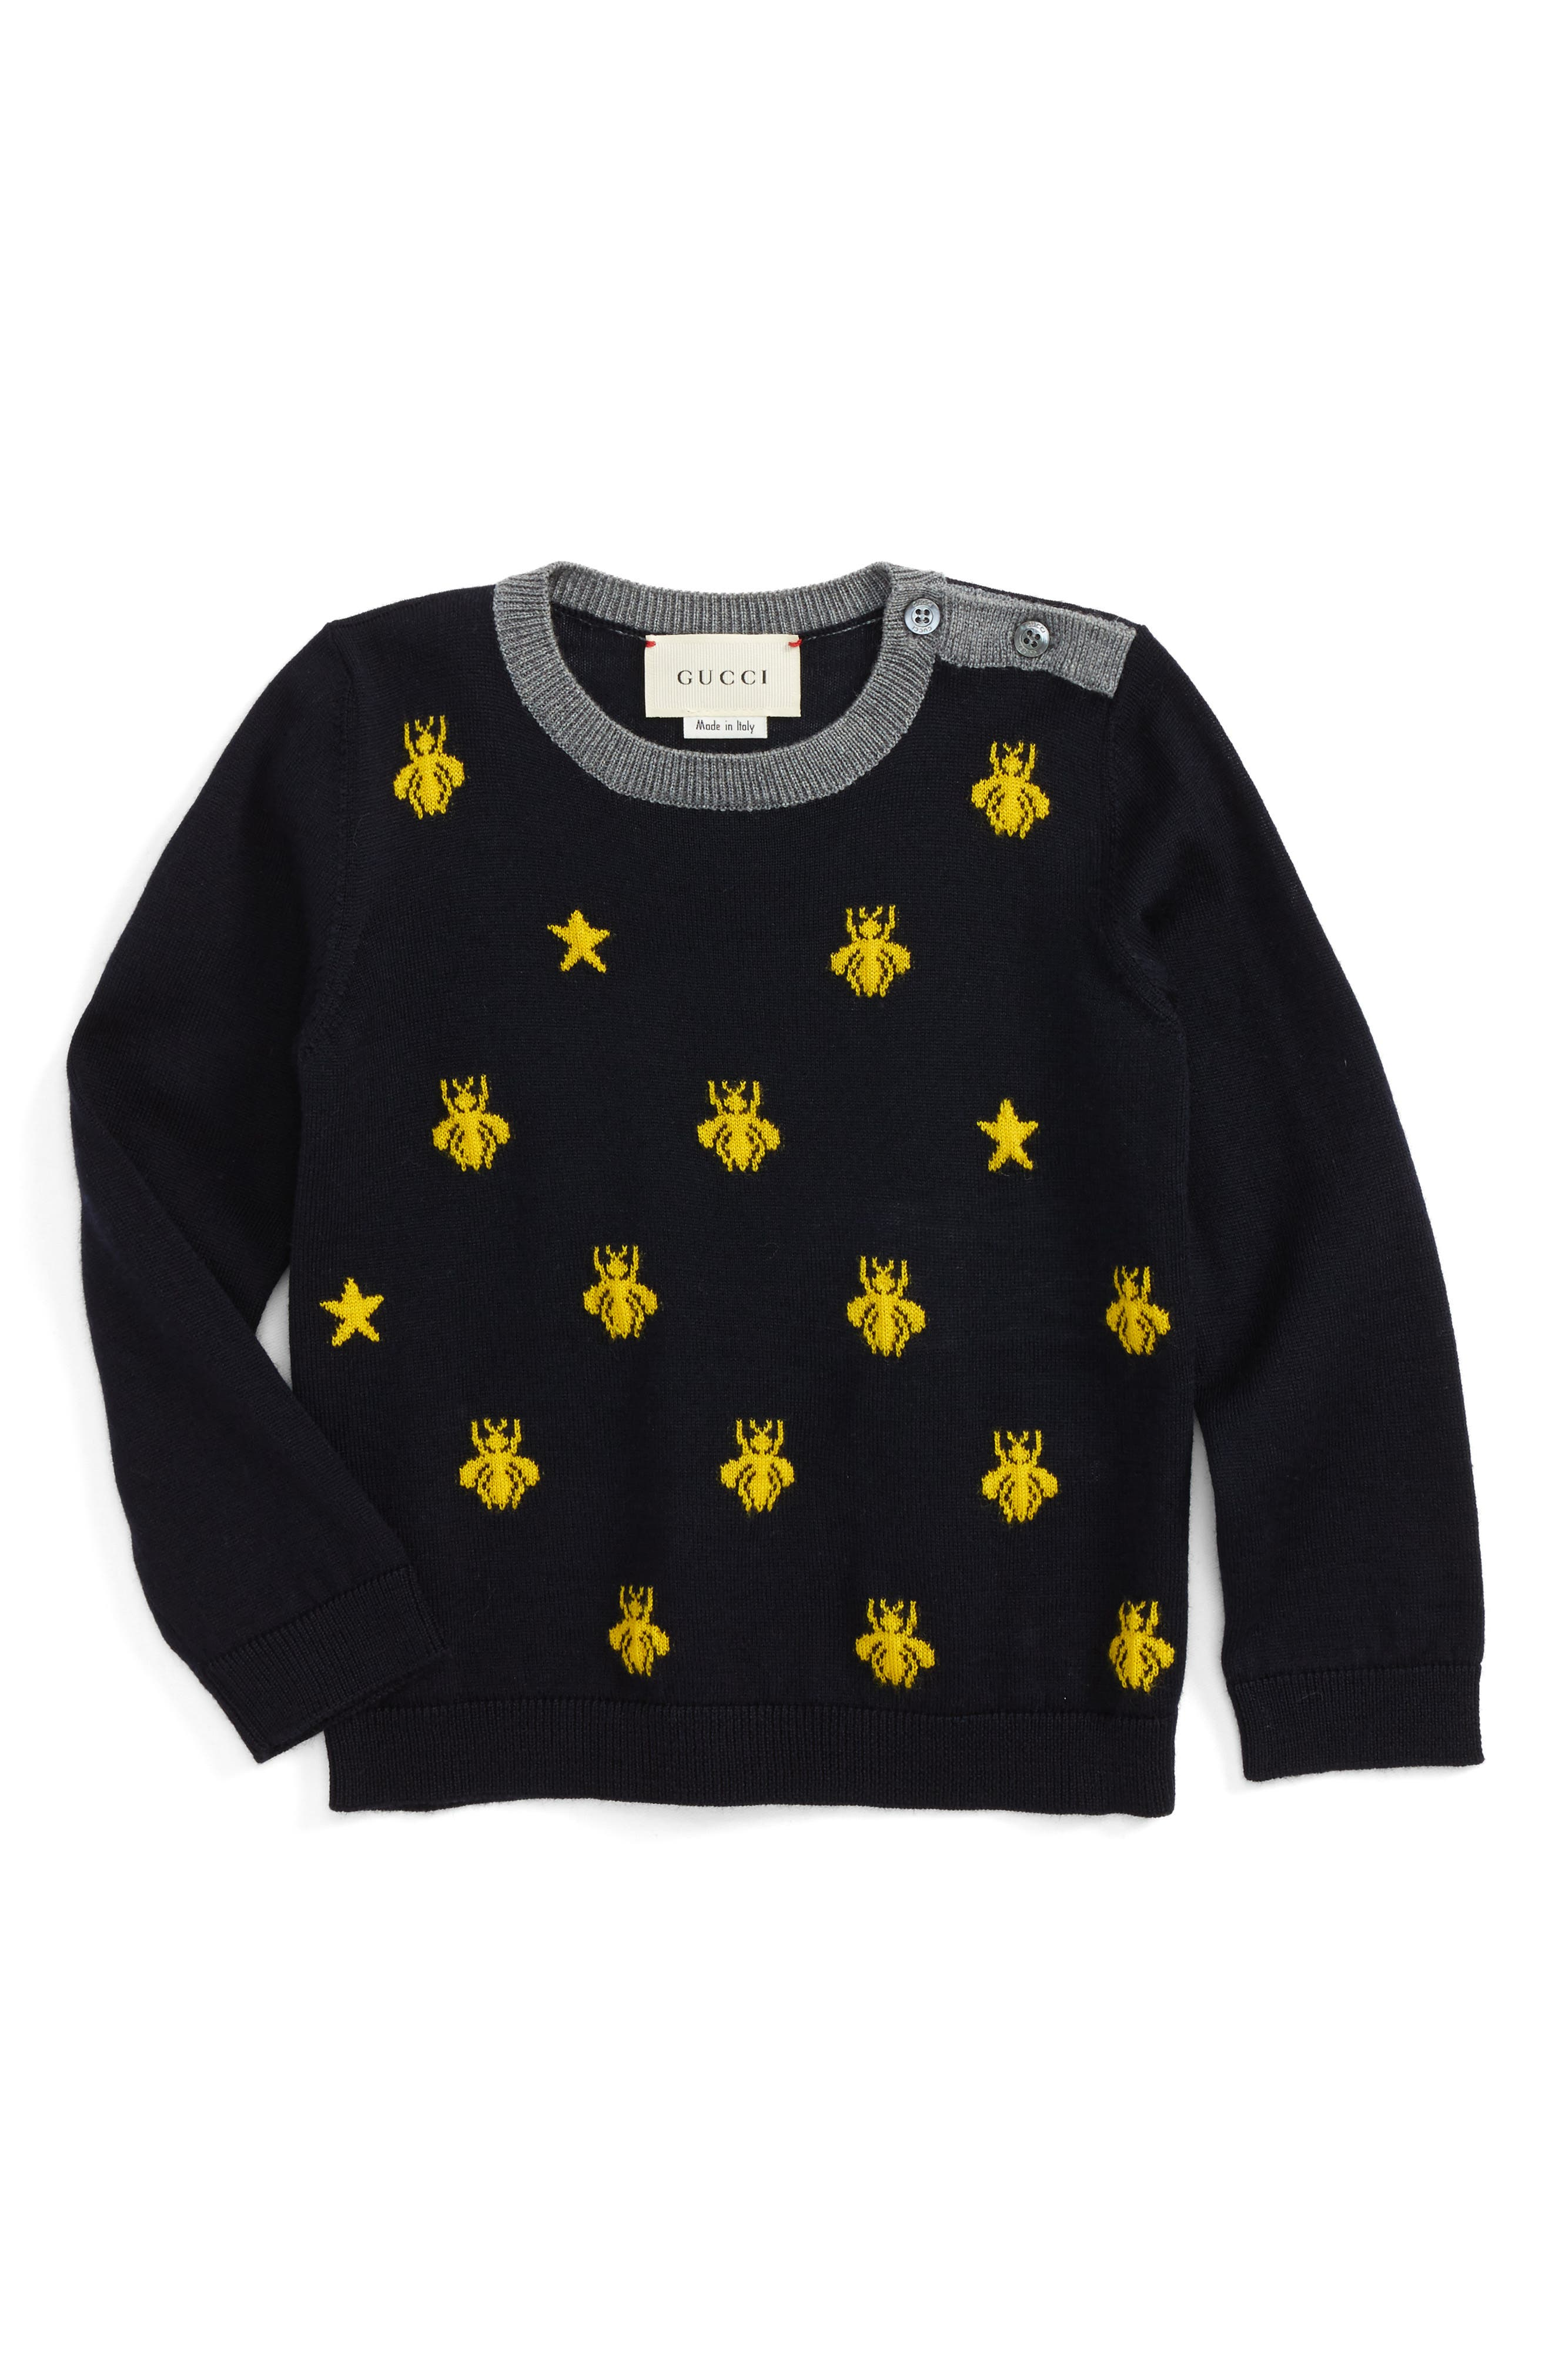 Main Image - Gucci Zest Bee & Star Intarsia Wool Sweater (Baby)